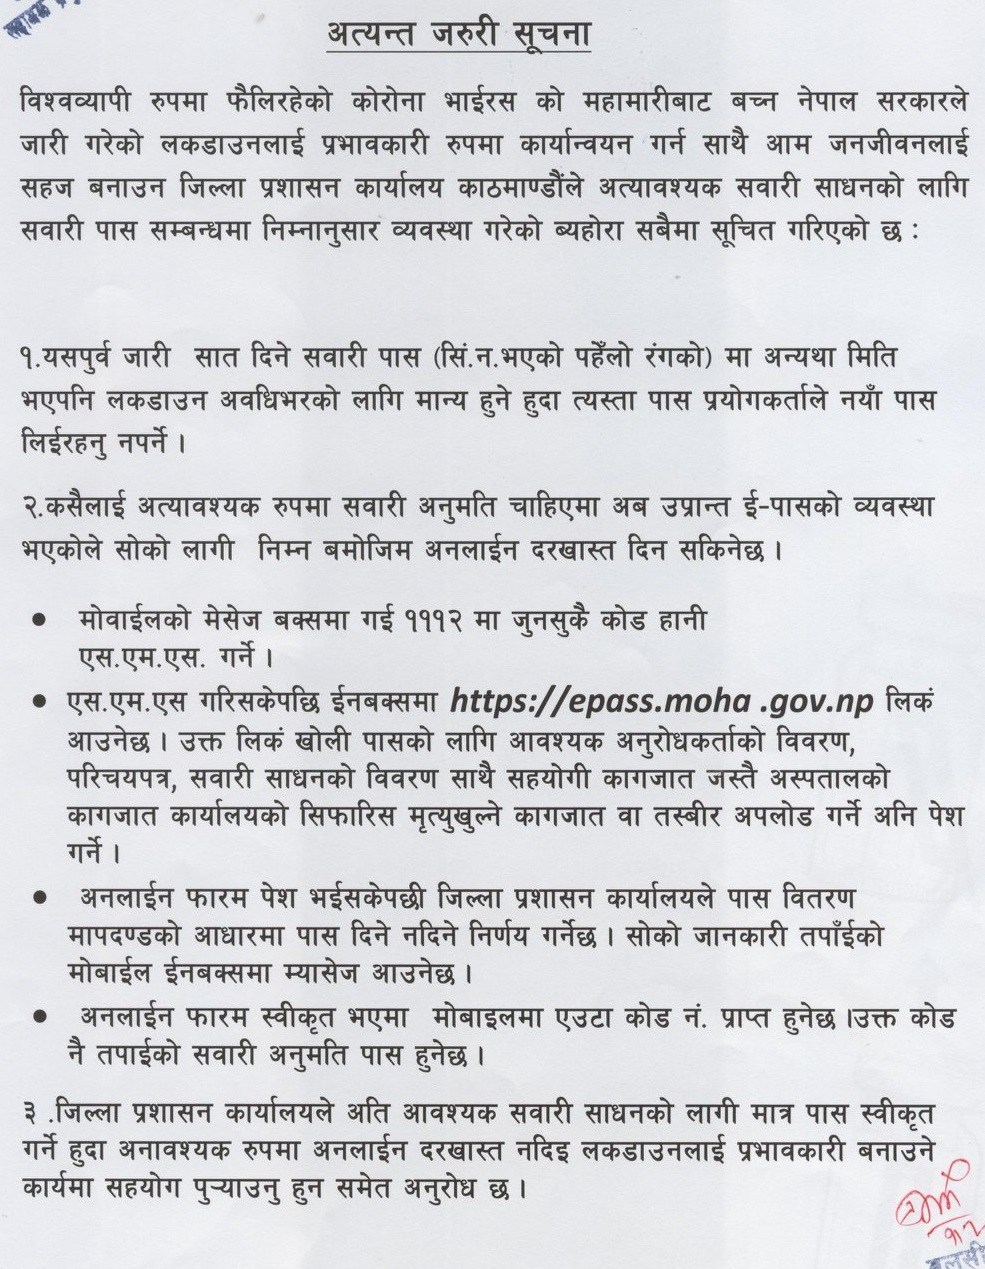 How to Get E-PASS for Lockdown in Nepal